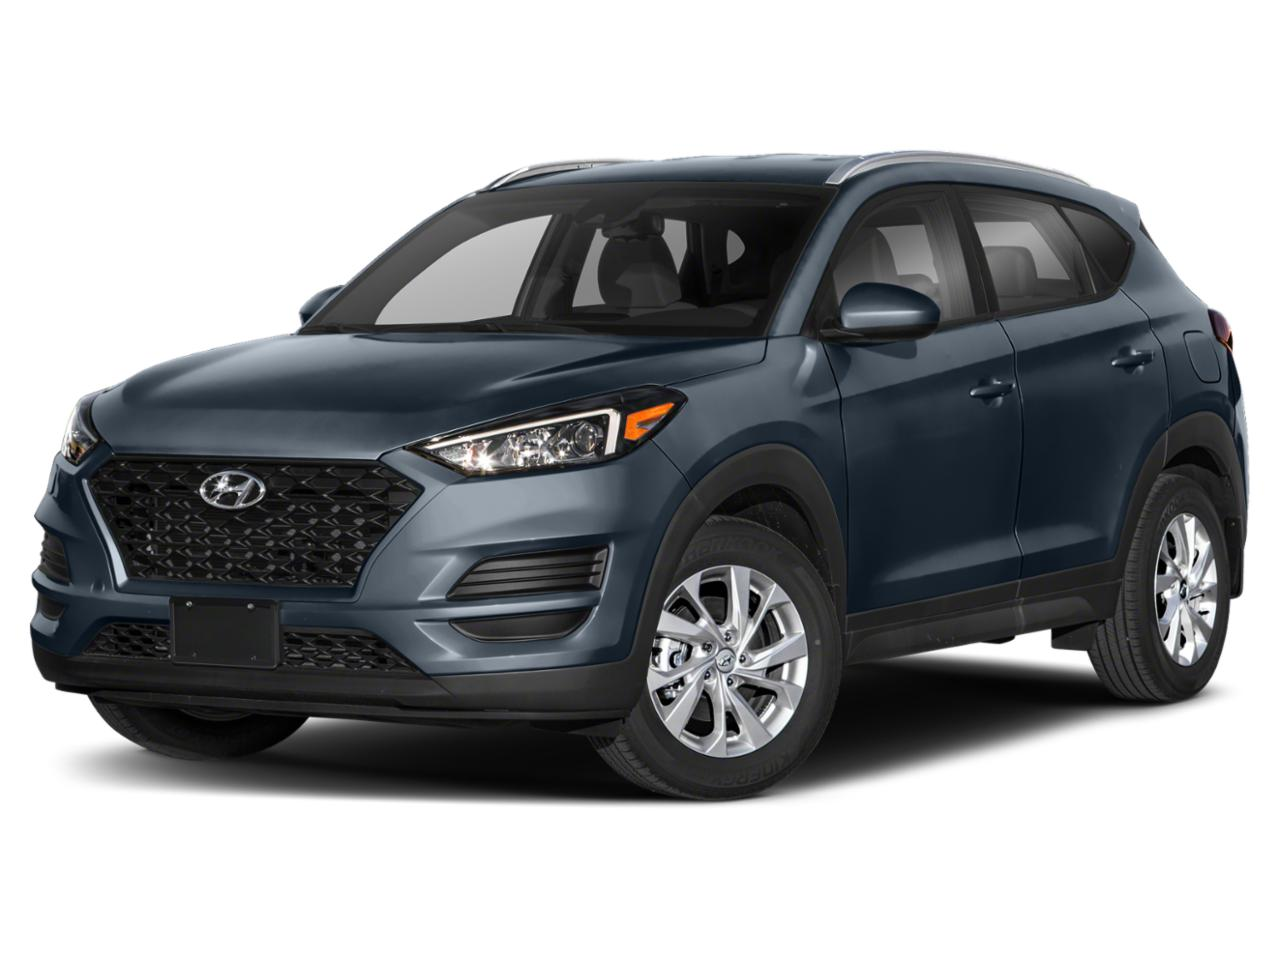 East Petersburg Dusk Blue 2021 Hyundai Tucson: New Suv for ...